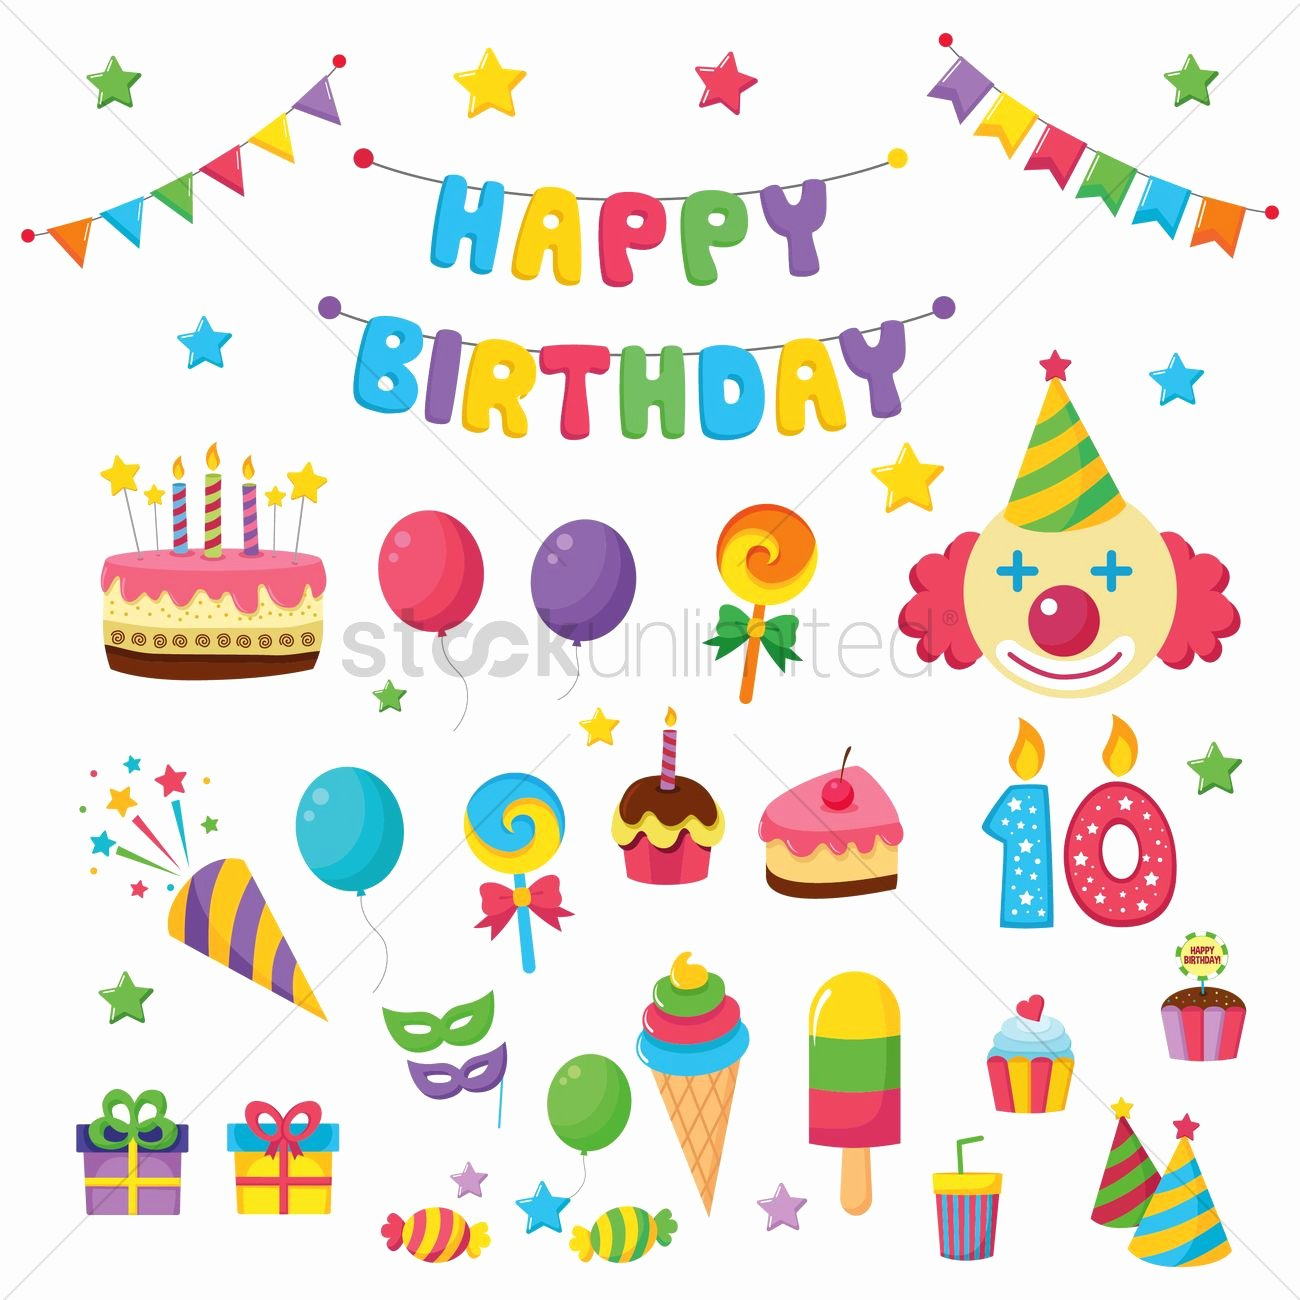 Happy Birthday Icons Free Lovely Happy Birthday Icons Vector Image